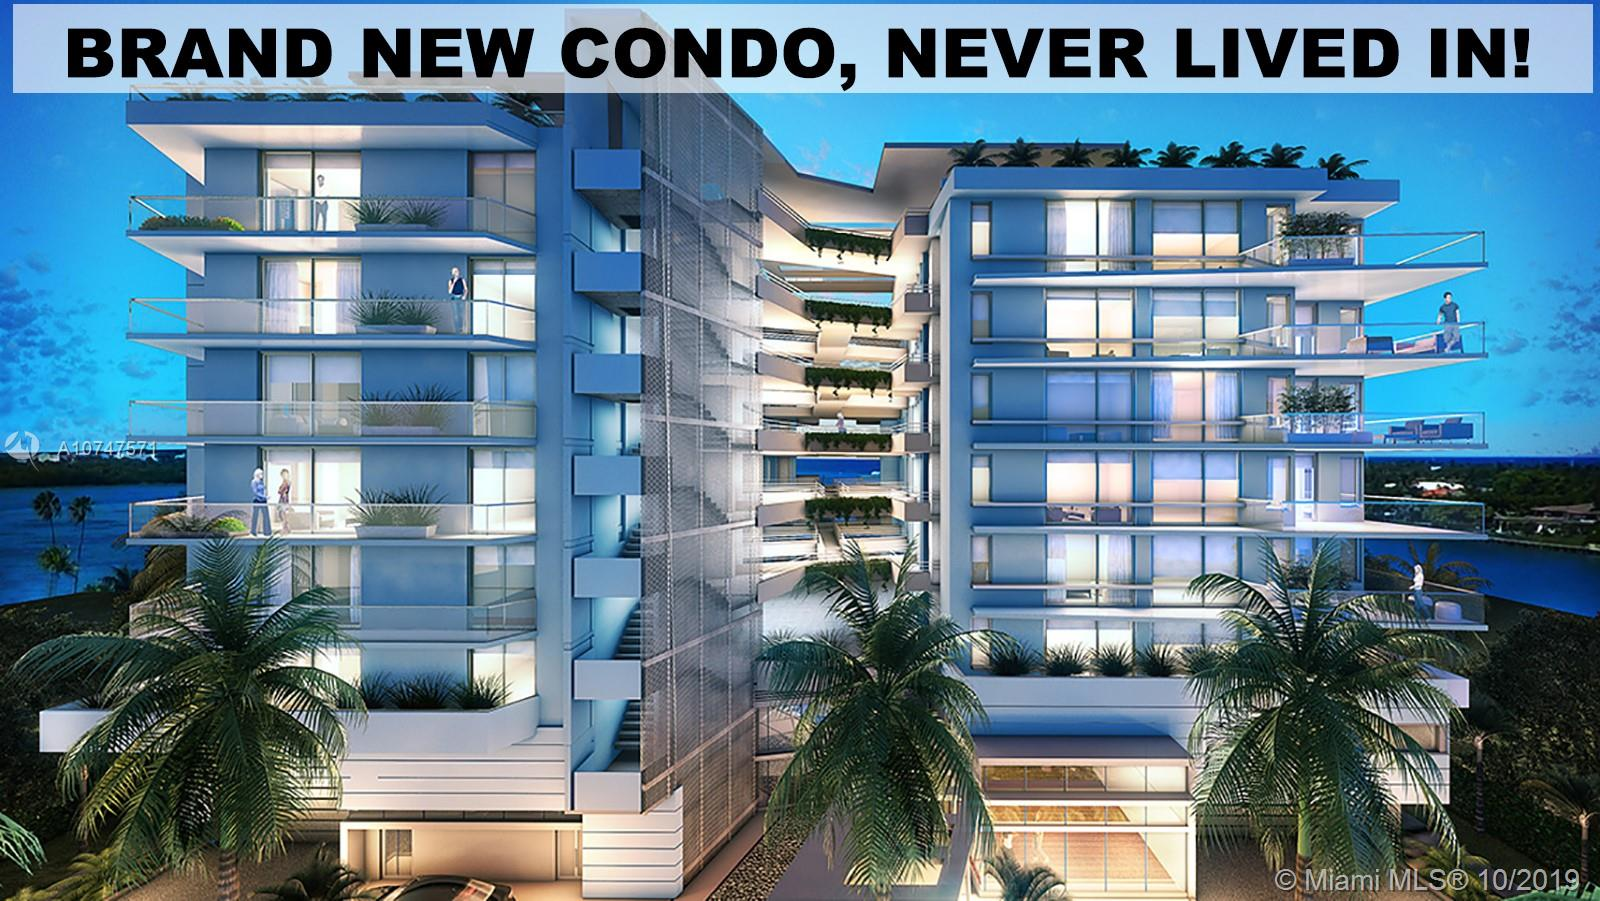 """BRAND NEW CONDO, NEVER LIVED IN! Large 1 Bed + Den (can be 2nd bdr) & 2 Baths with partial water view. 2 covered parking spaces + 1 storage cage. Complete Kitchen with top of the line appliances including wine cooler and washer/dryer. The Palms Condo is a boutique waterfront building with a rooftop pool deck, hot tub, rooftop BBQ/entertainment area with amazing views. Located in Bay Harbor Islands, one of Miami's most desirable locations. Walk to """"A"""" rated Ruth K. school (K-8), just minutes to the world-famous Bal Harbour Shops and the sandy beaches of Bal Harbour and Surfside.  The island is perfect for families; playgrounds throughout the island, tennis courts, bicycle paths, citibike rental adjacent to bldg. A one of a kind property in a one of a kind neighborhood. Easy to Show!"""